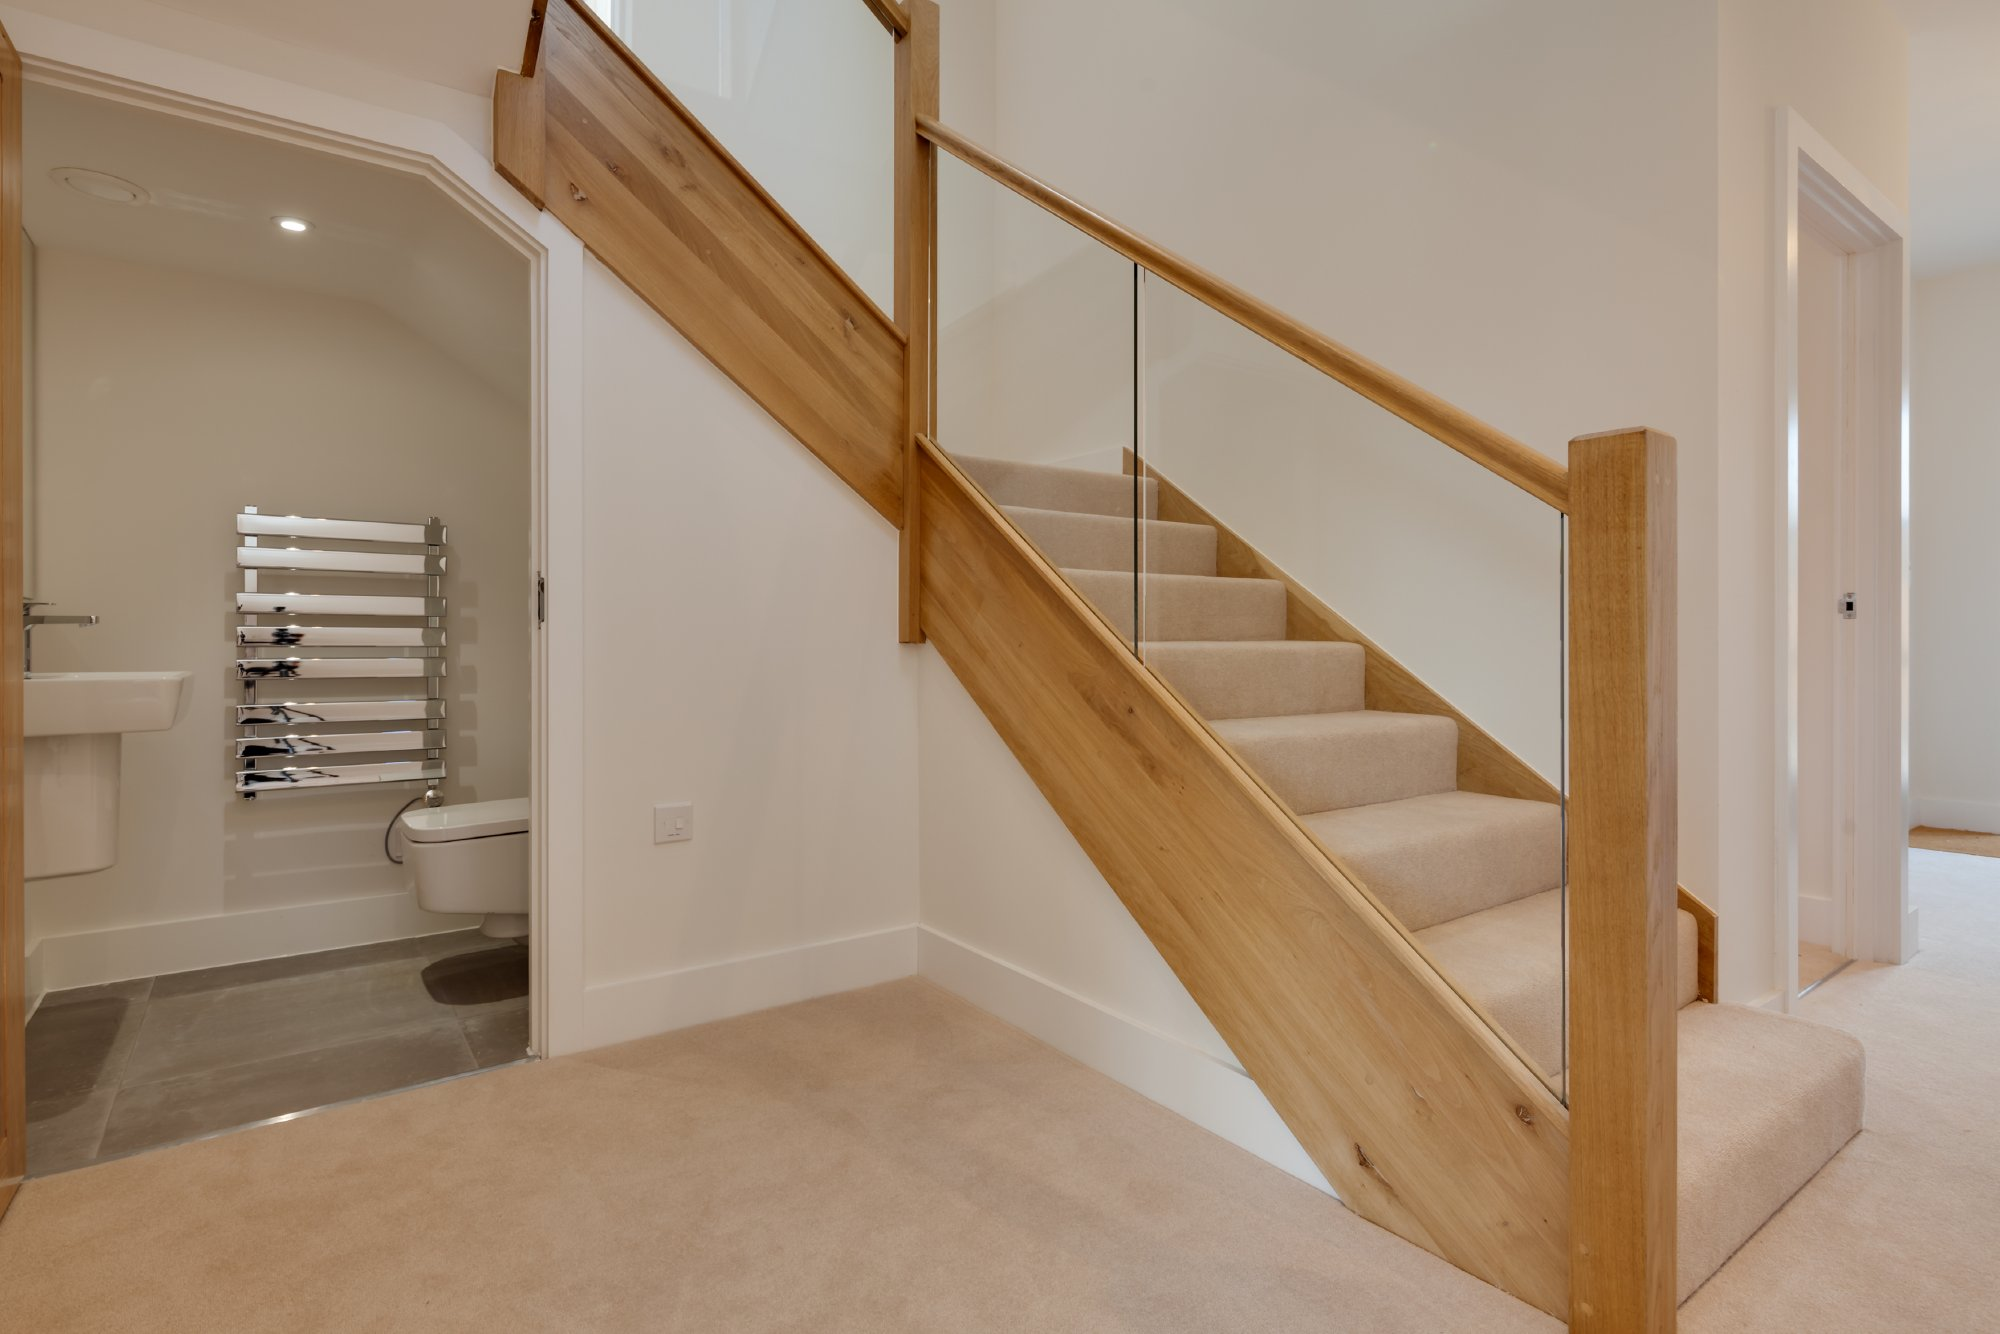 heat recovery,Stair